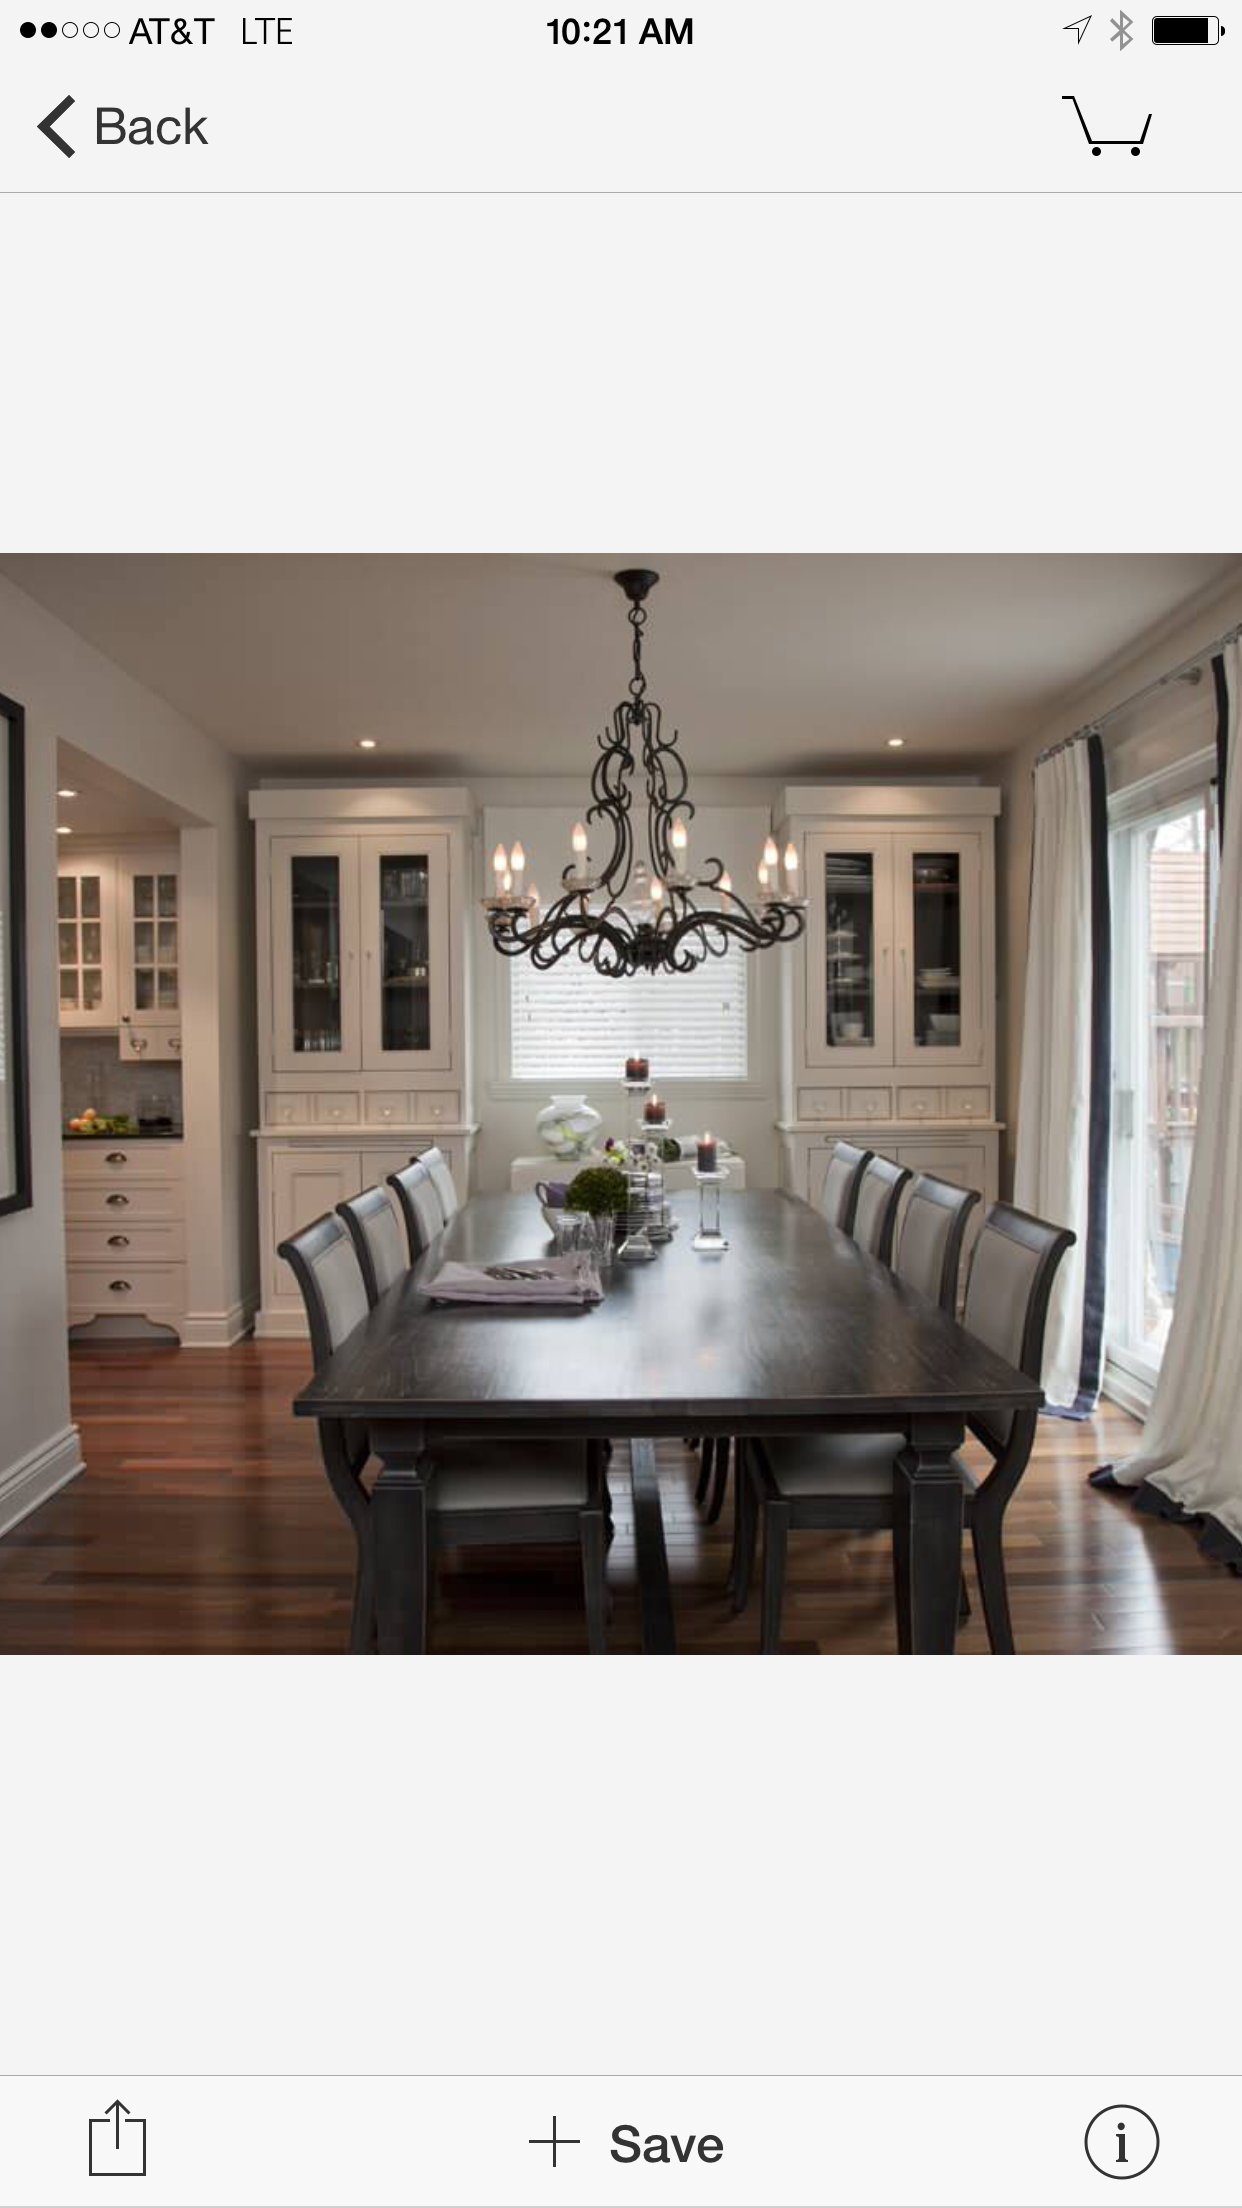 Pin by Michele Johns on Dining Room / Butler's Pantry ... on Living Room Wall Sconce Ideas For Dining Area id=97185